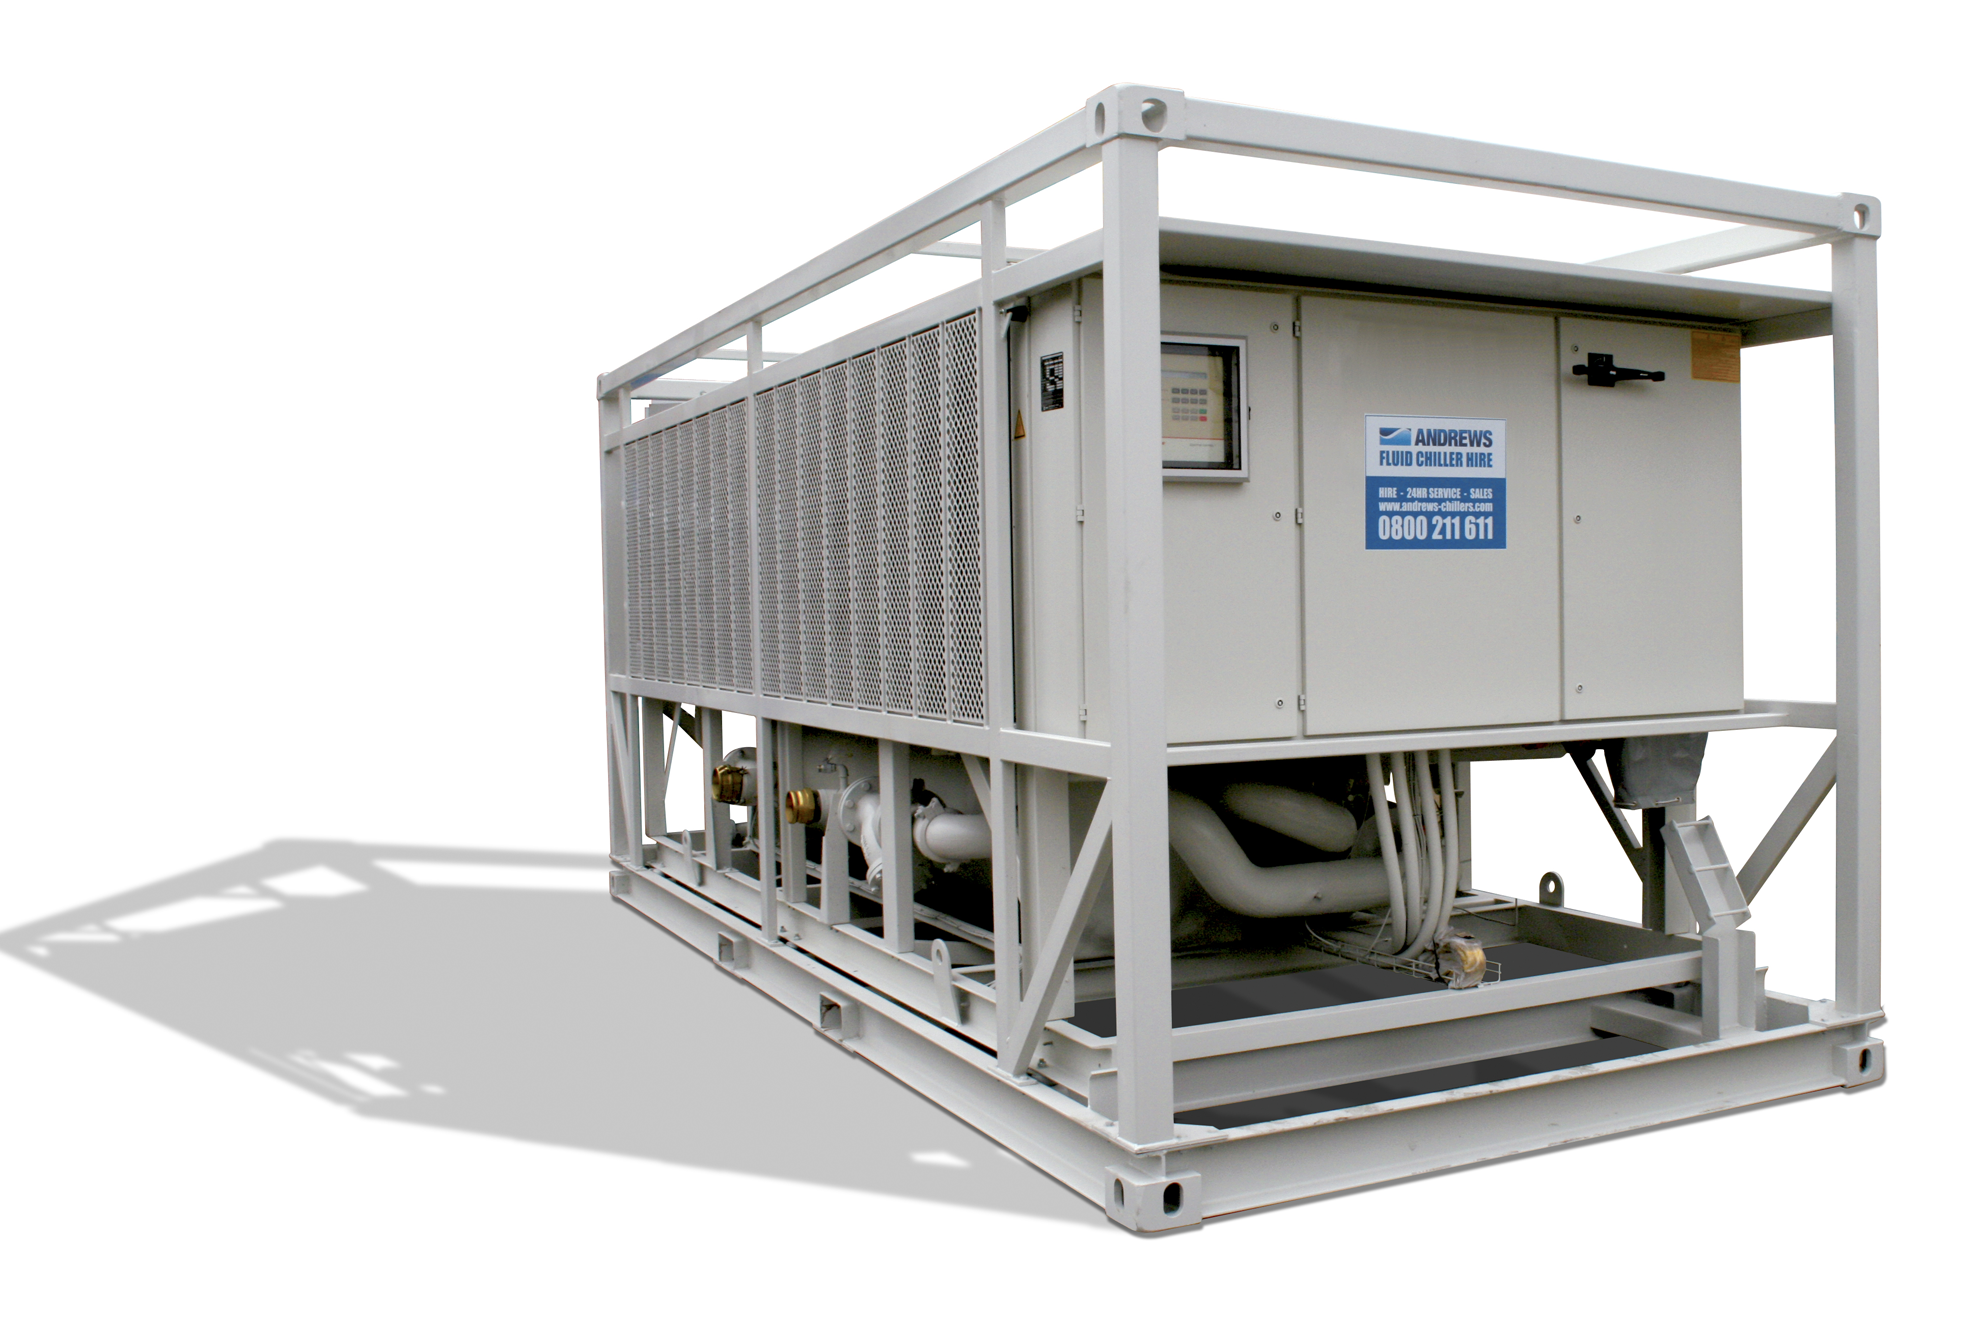 Chiller Hire View full size image #416086